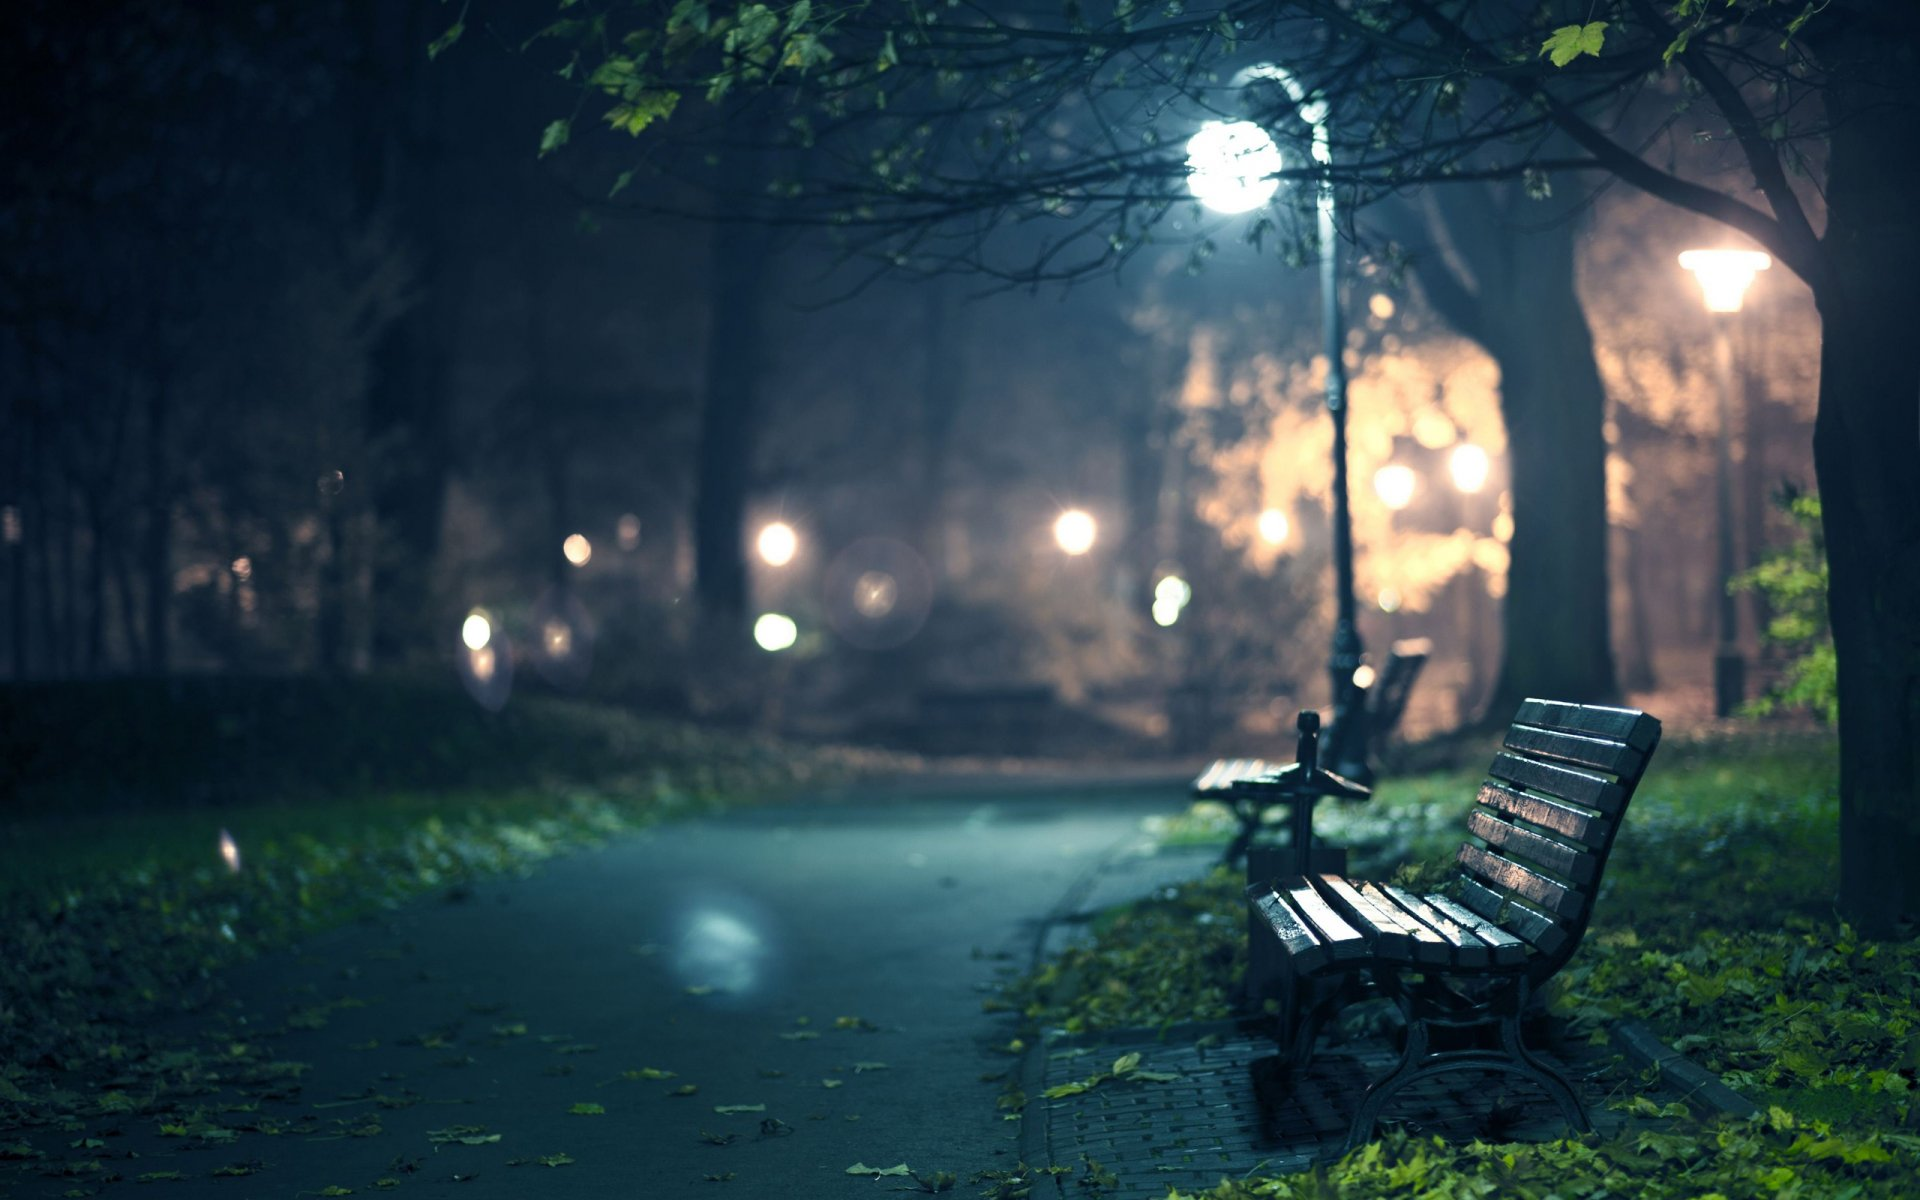 romance night shops benches shop bench seats parks night city track walks walk tree light lights twilight darkness lamps leaves foliage autumn autumn wallpaper autumn wallpapers fallin